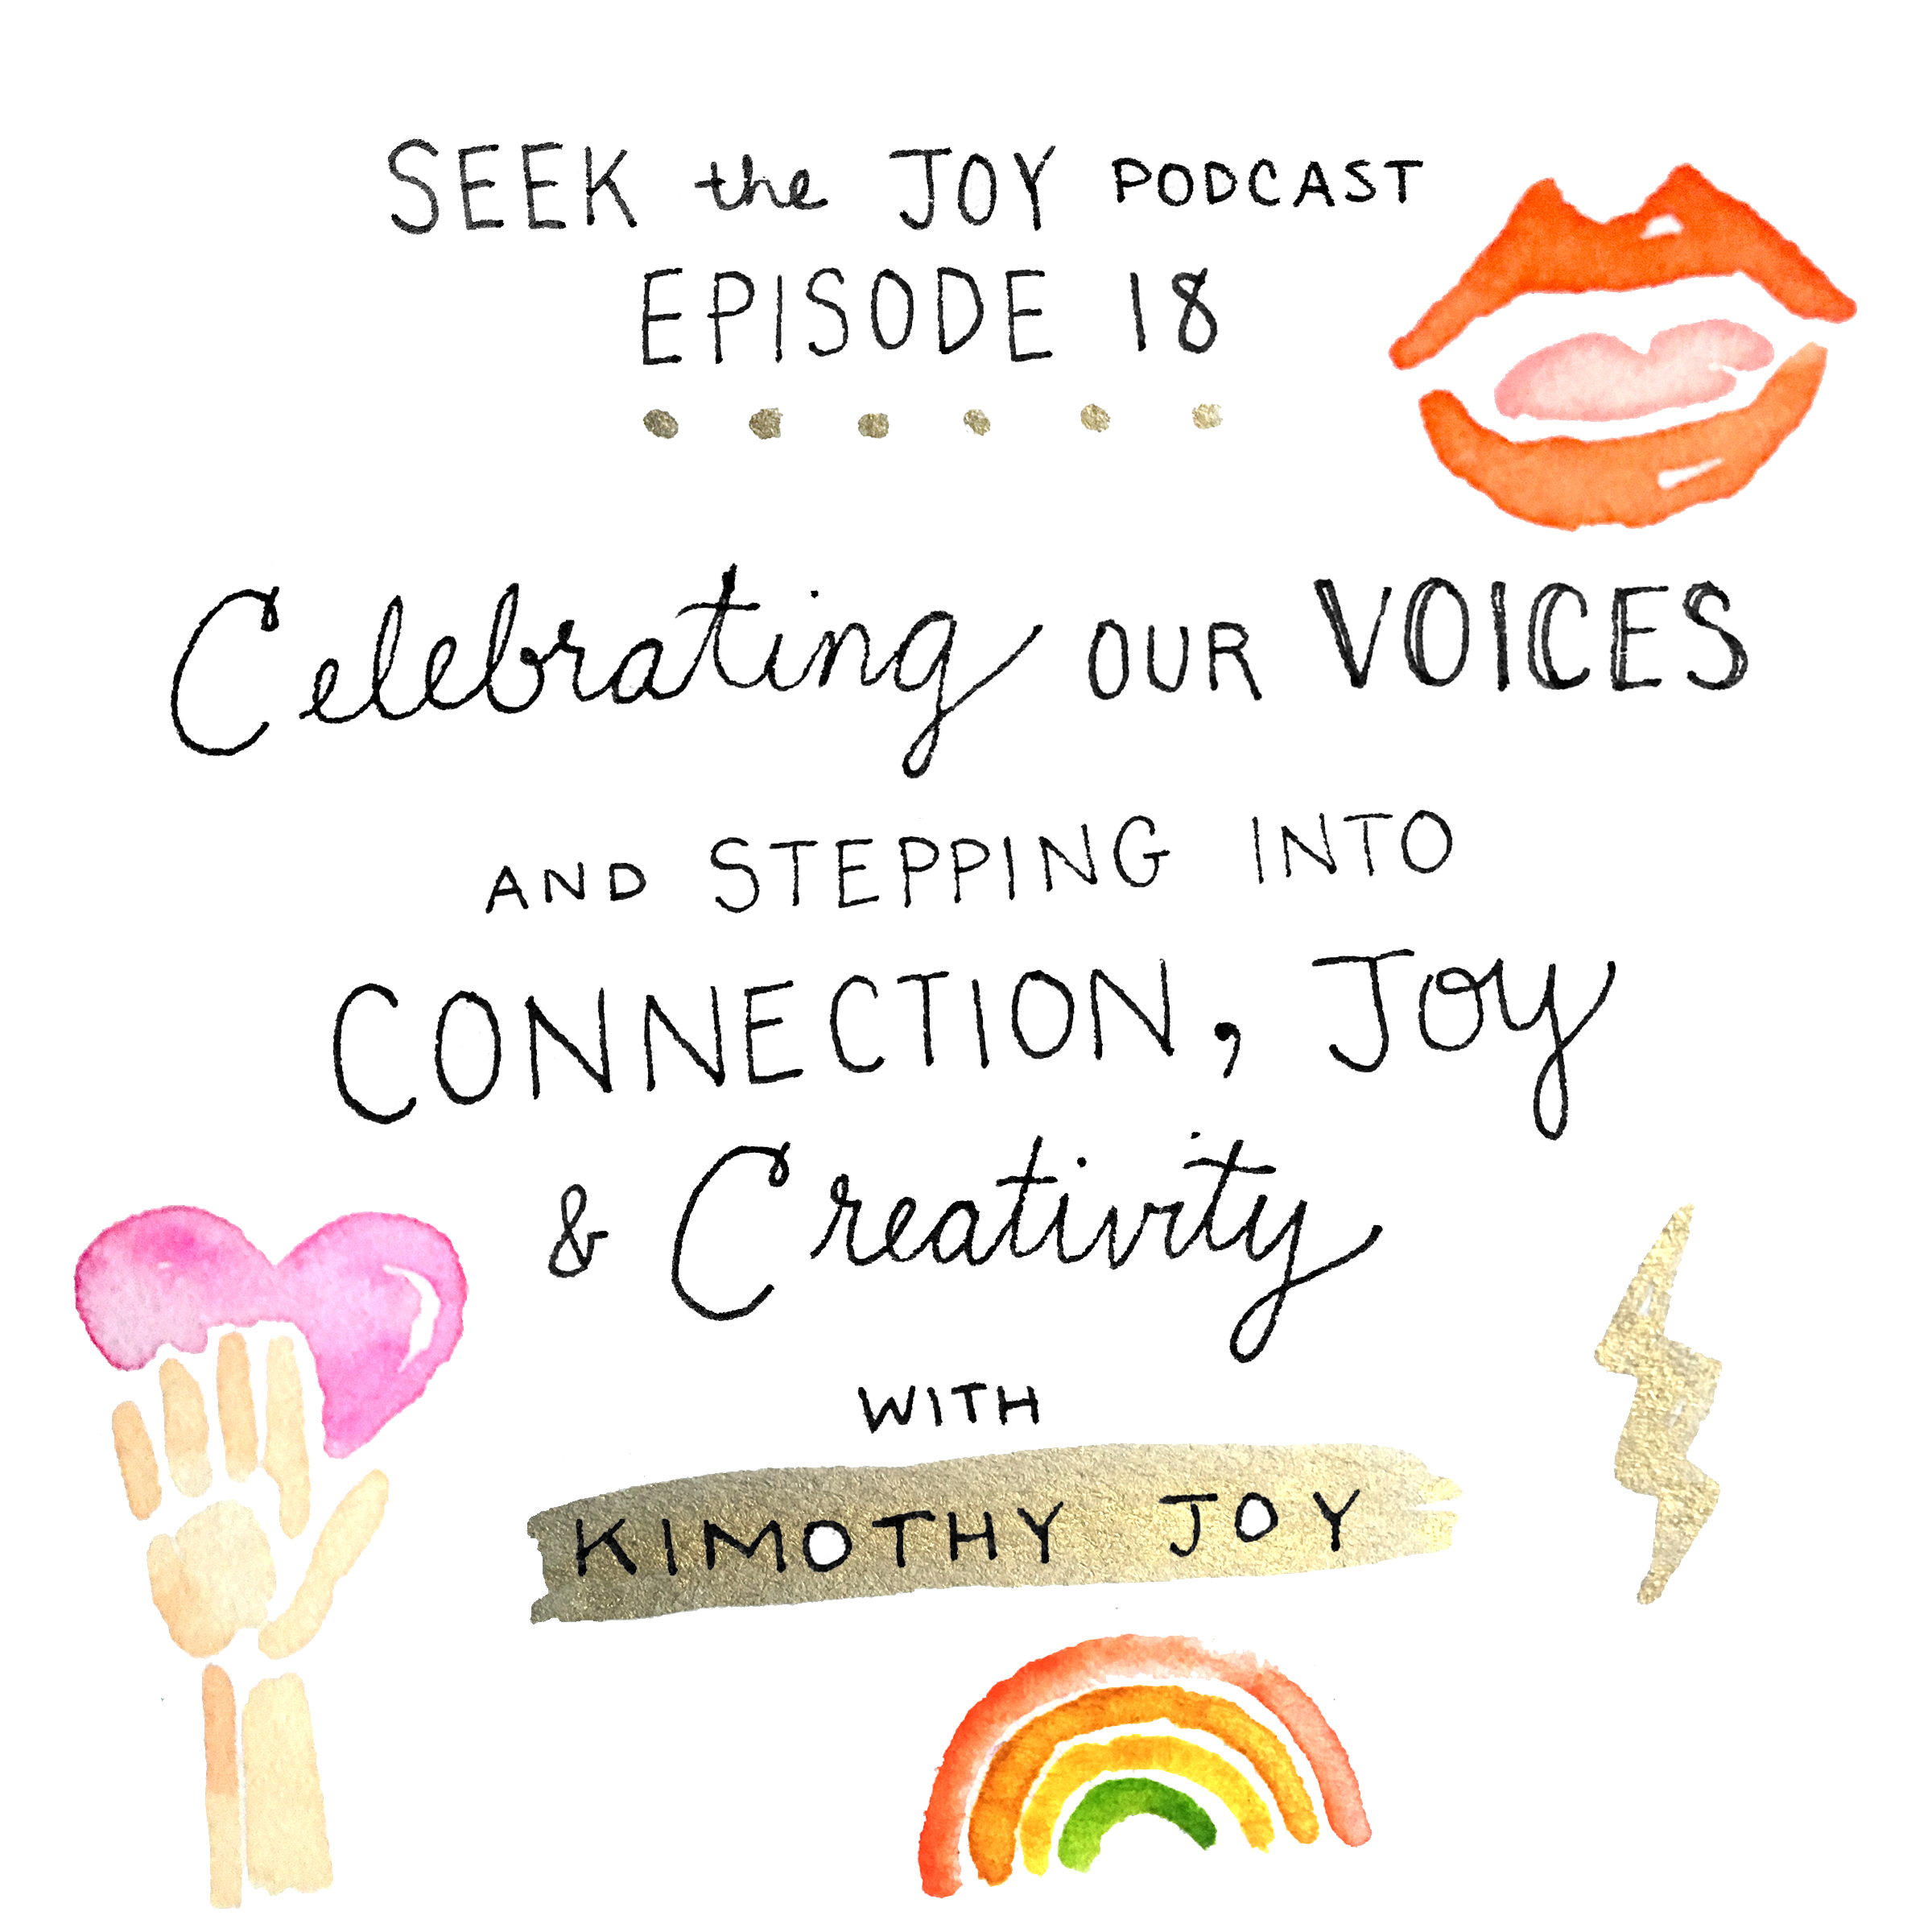 Kimothy created this awesome doodle for the title of today's episode. I love it, and it perfectly captures our conversation. Thank you Kimothy for this awesome piece to go along with today's conversation!